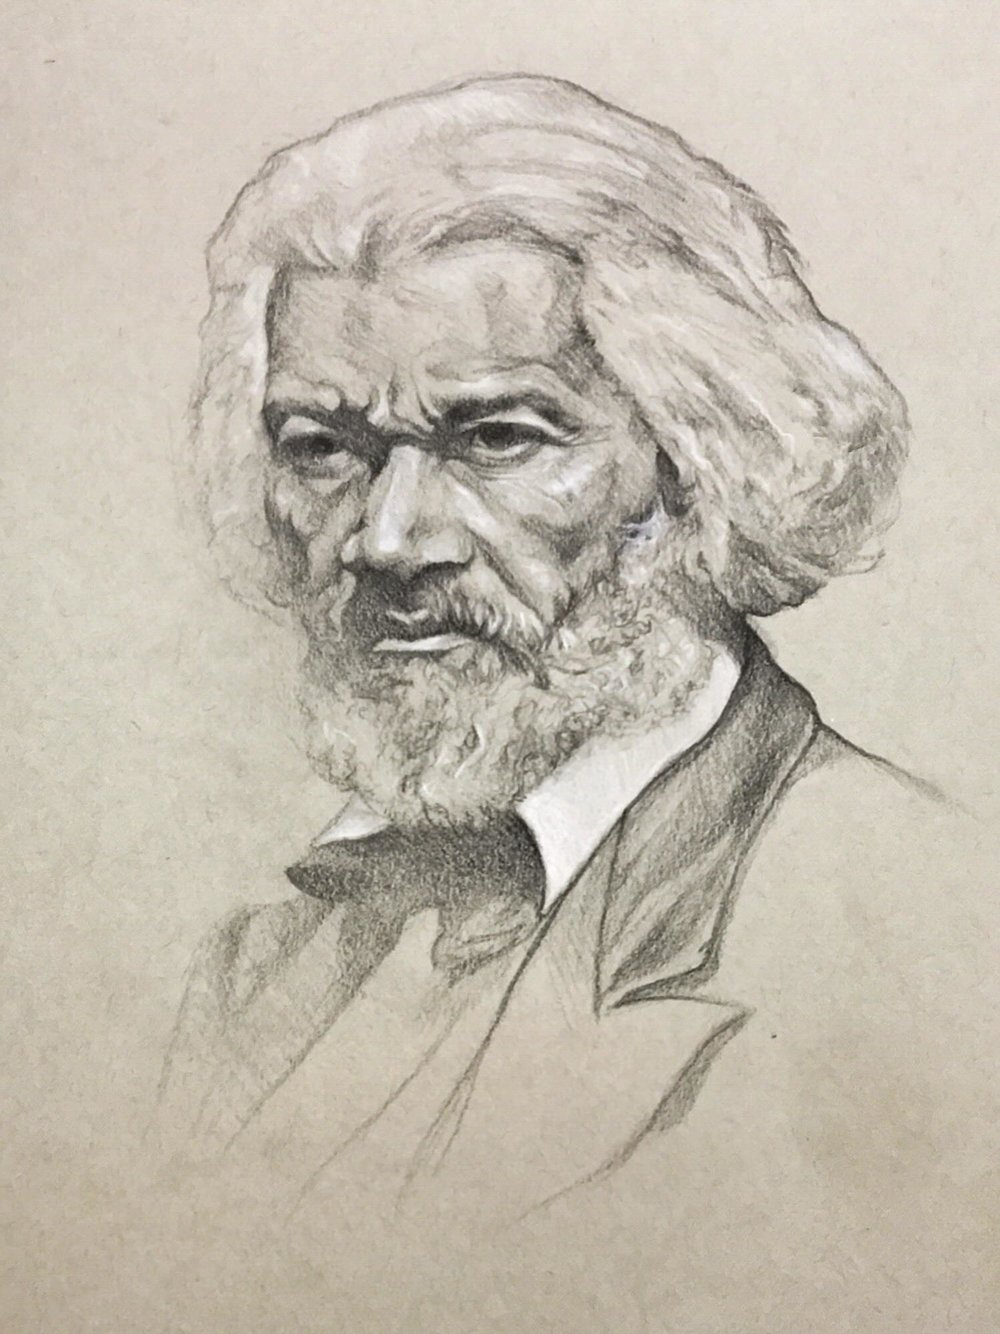 """The limits of tyrants are prescribed by the endurance of those whom they oppose."" – Frederick Douglass"